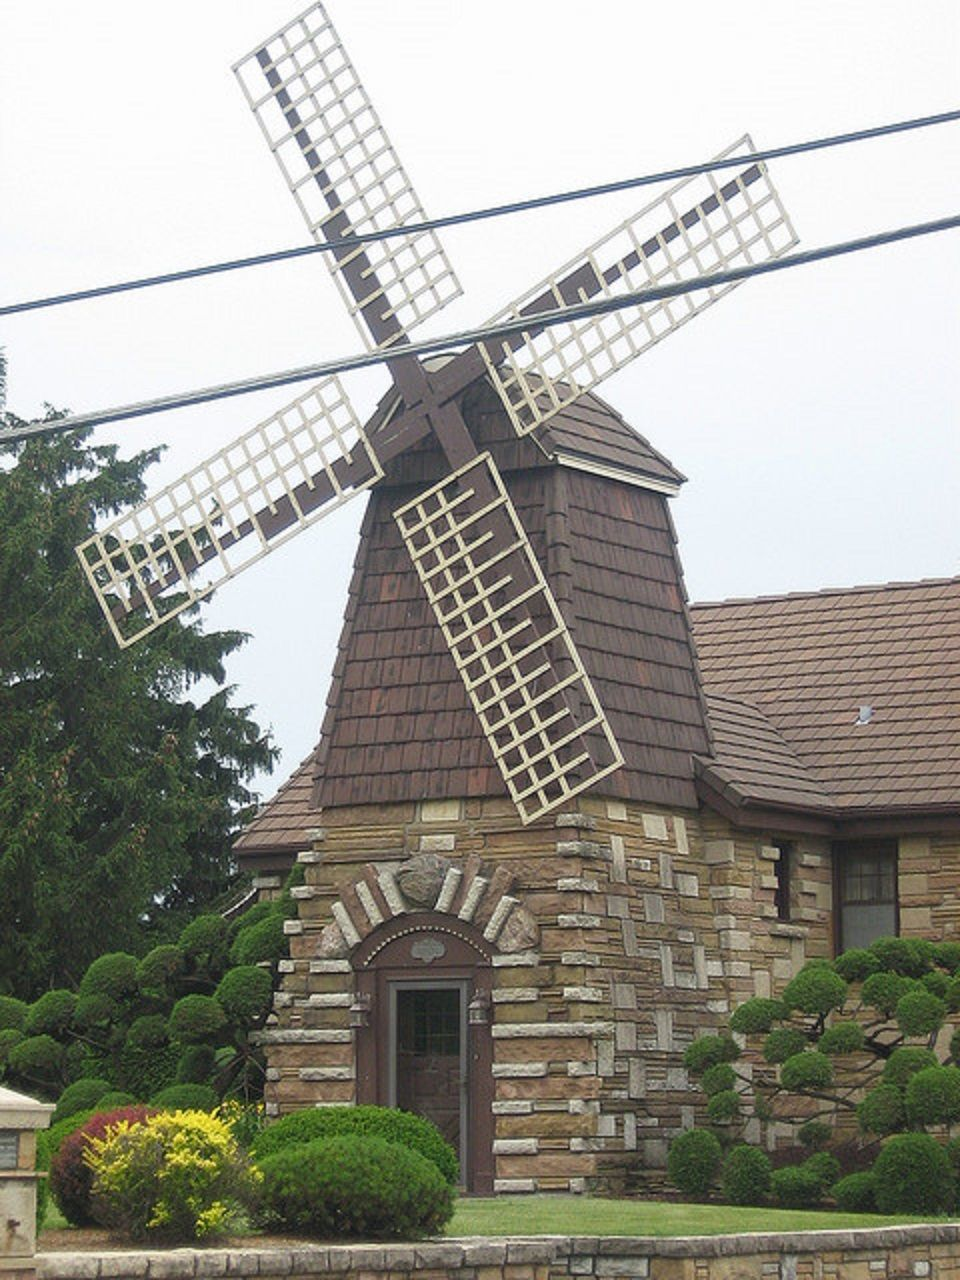 Old Fashioned Houses windmill house - wheaton, illinois: - built in 1942 from materials